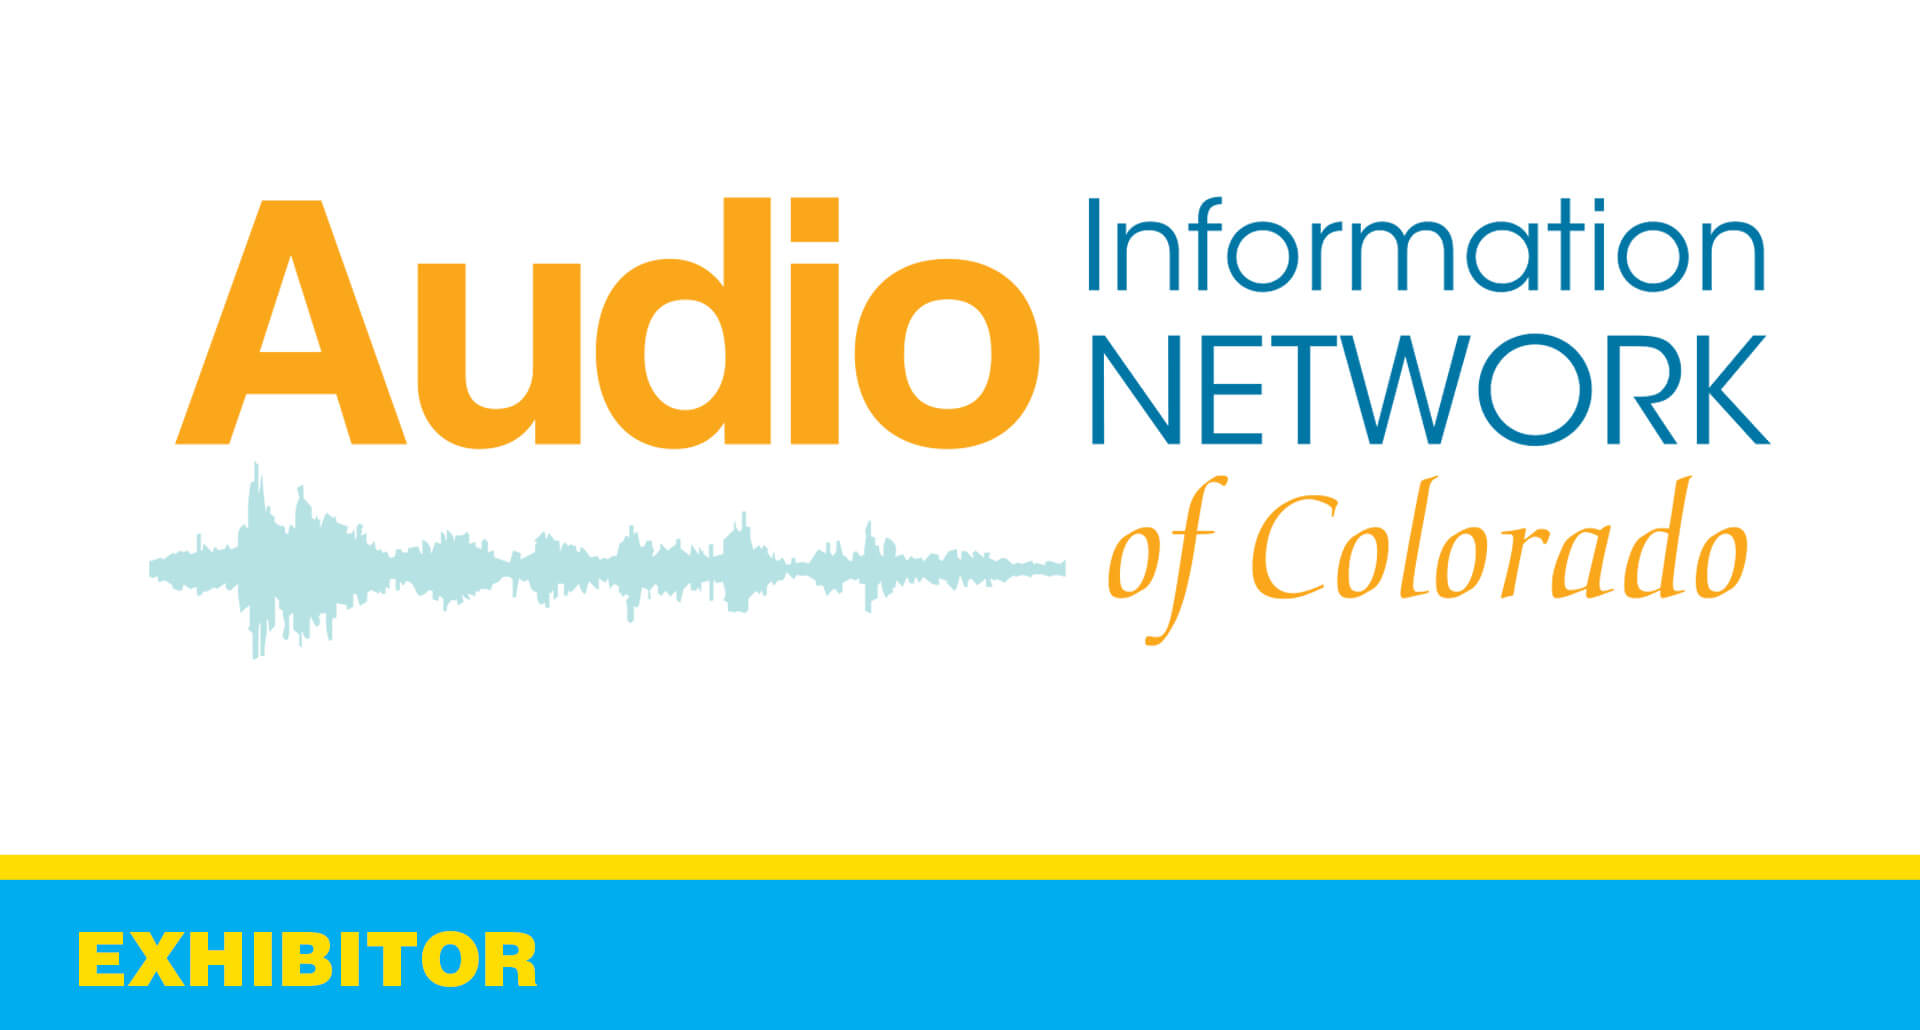 Audio Information Network of Colorado